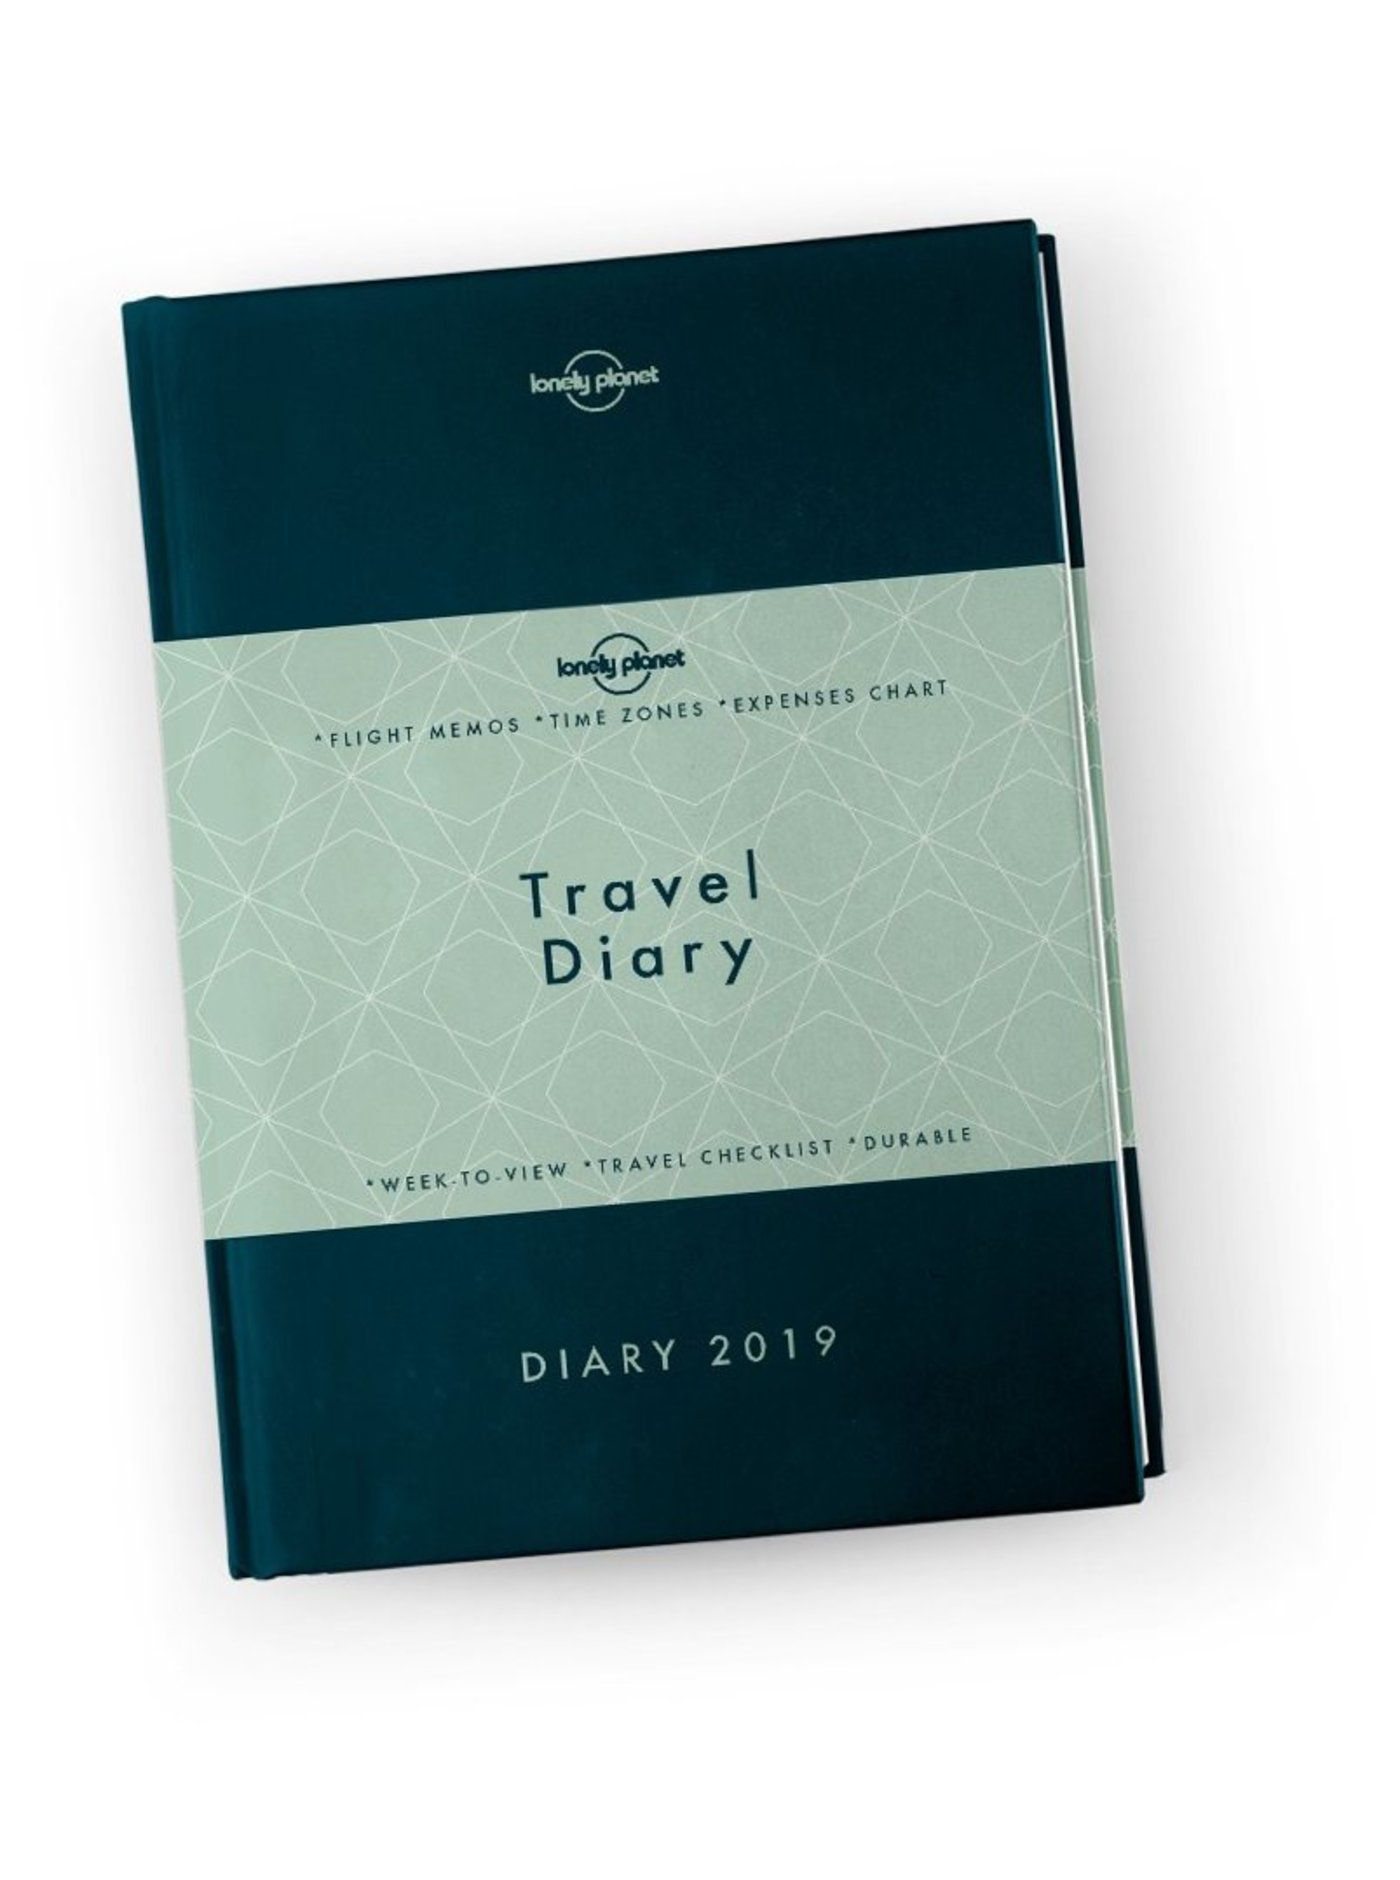 Lonely Planet's Travel Diary 2019